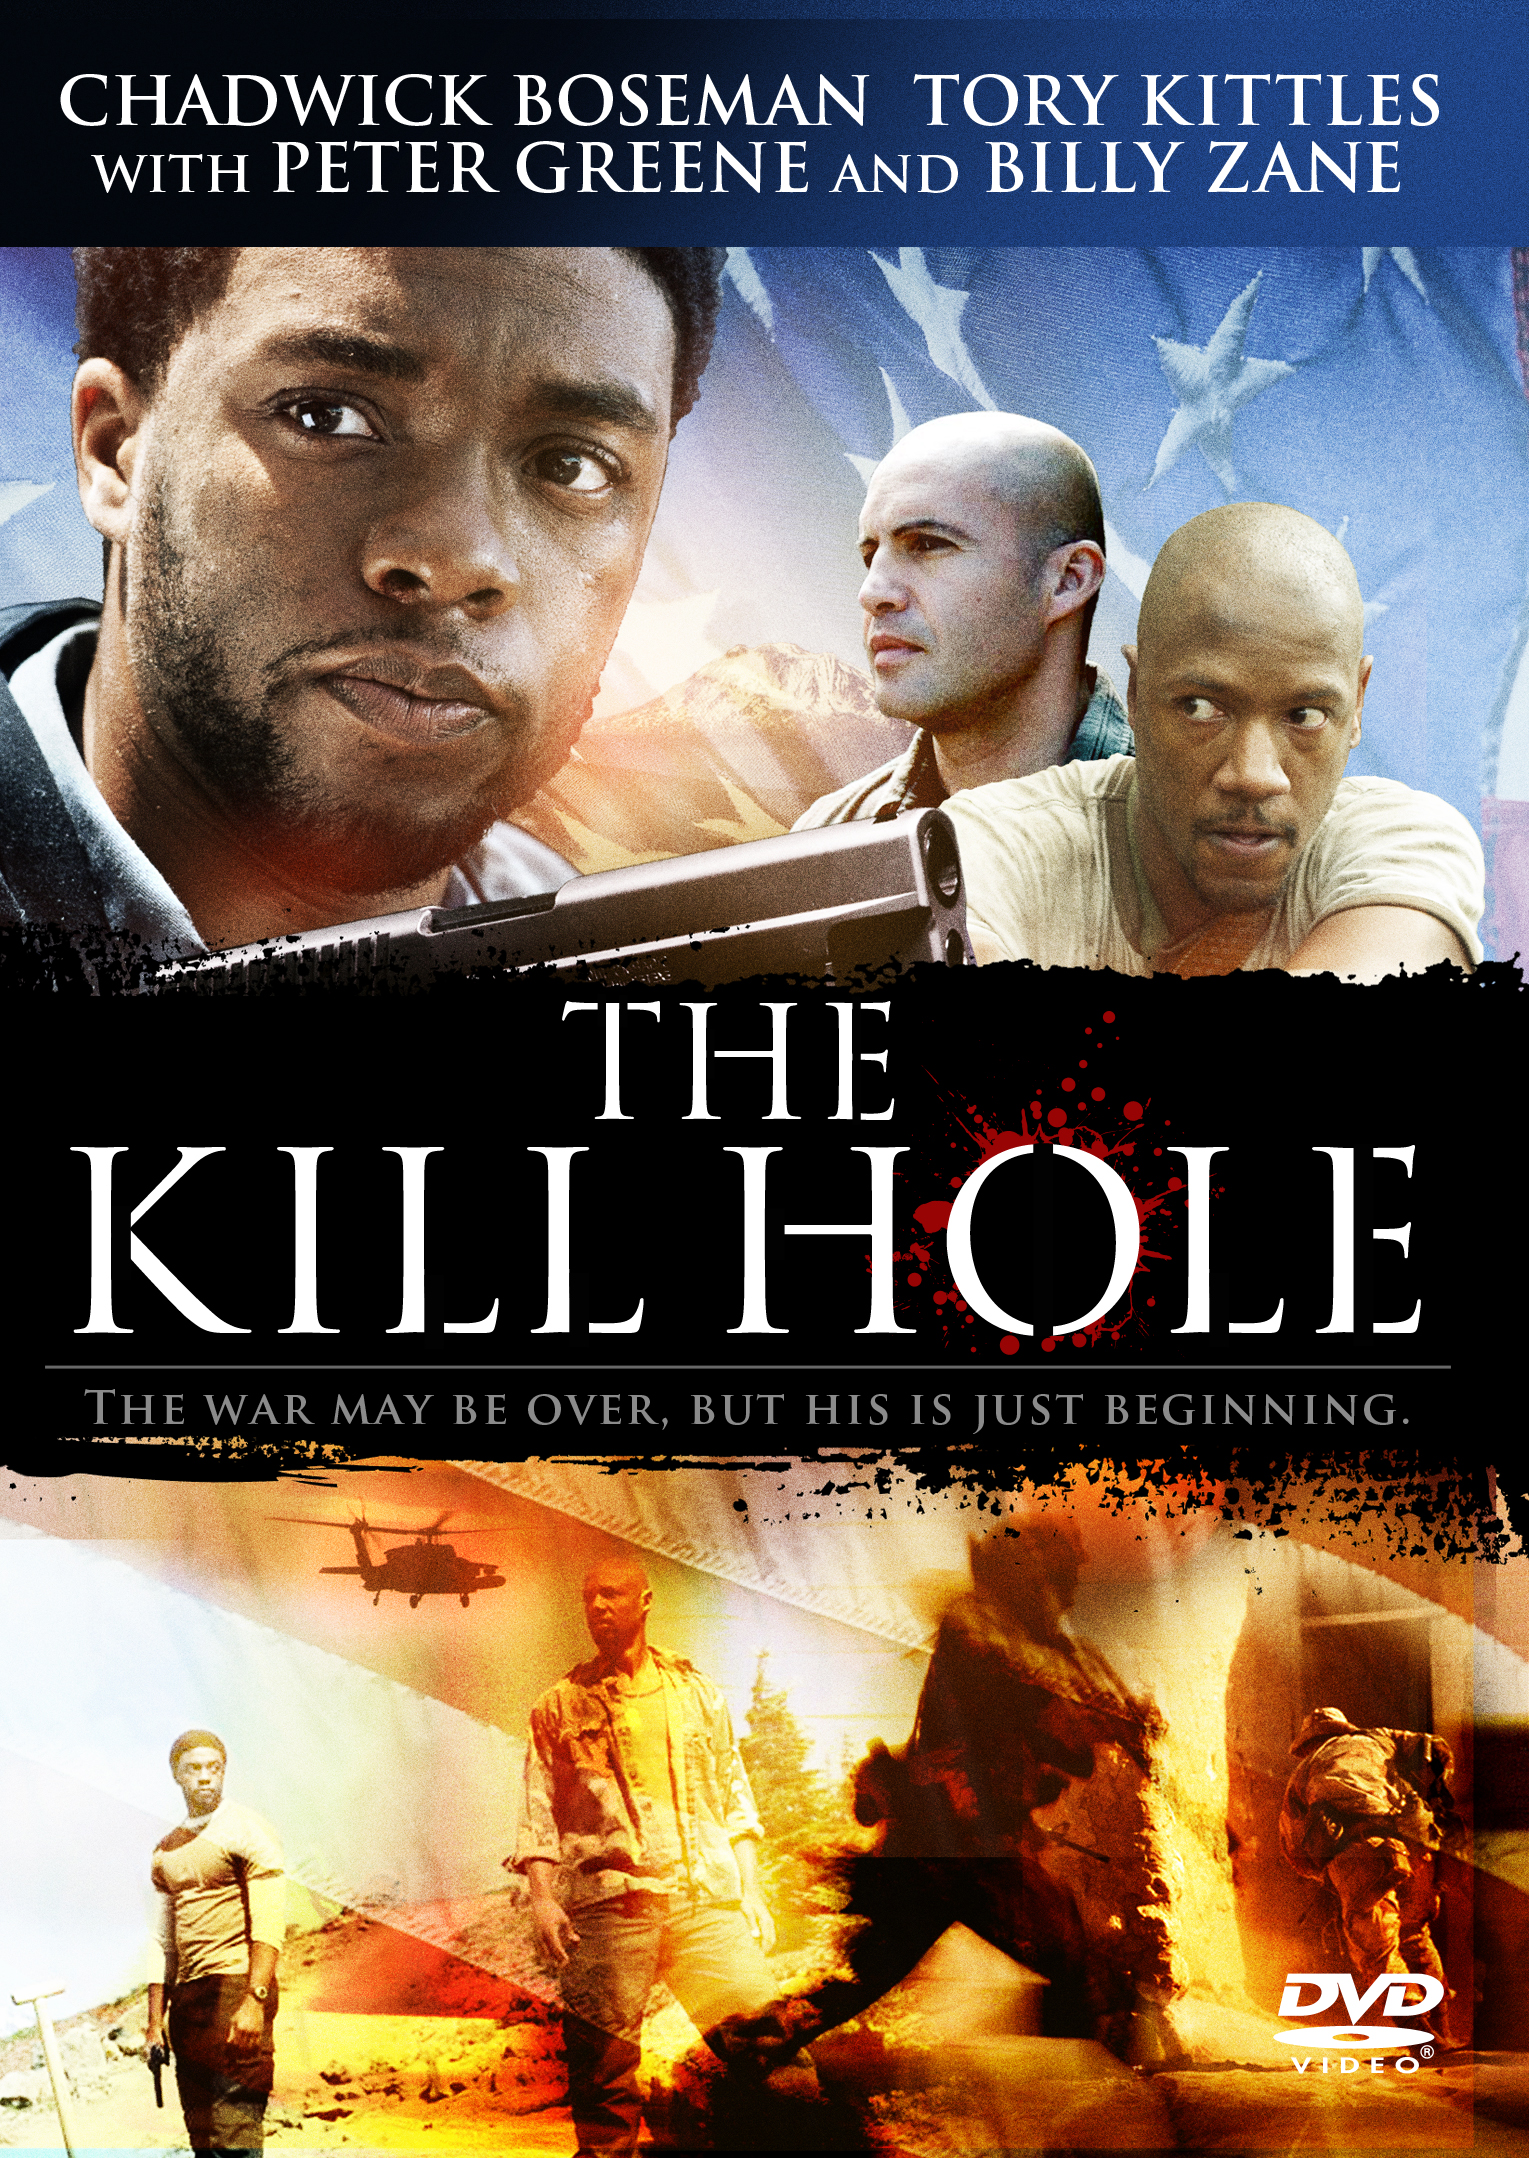 The Kill Hole Artwork - all rights reserved